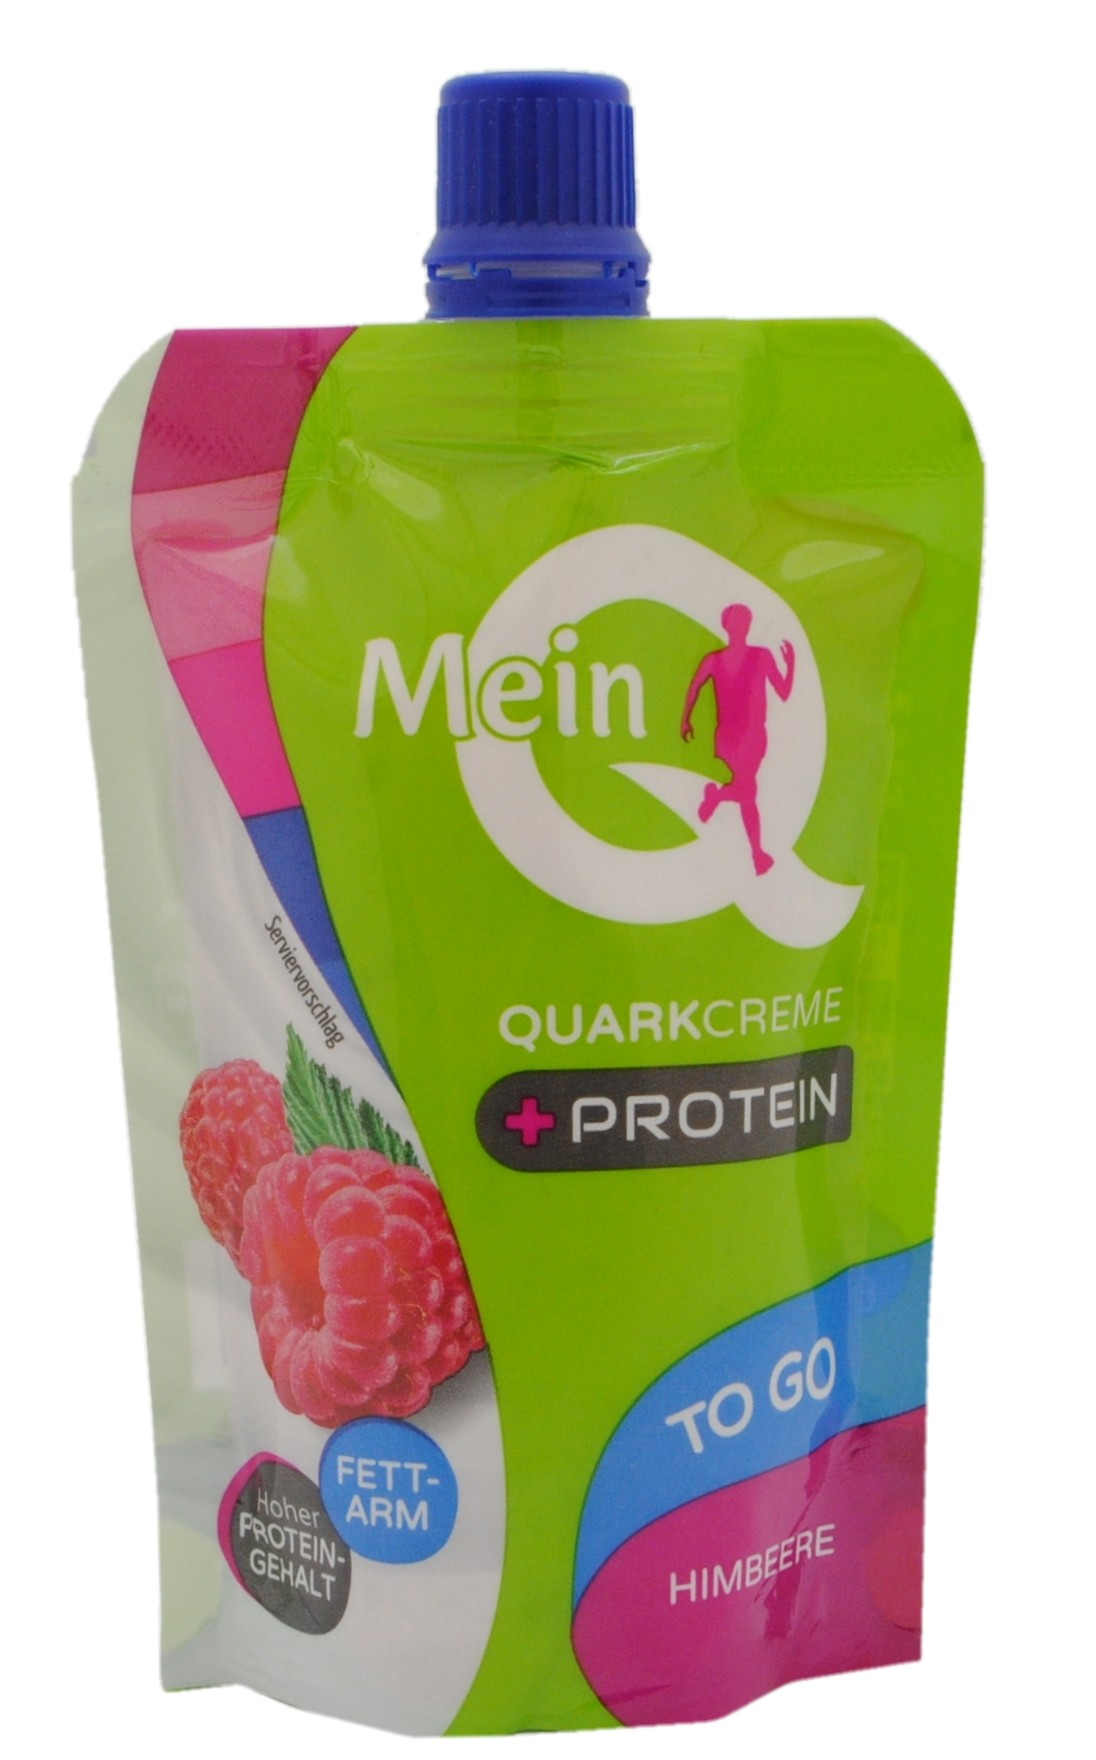 Raspberry Flavoured Quark Creme with Protein